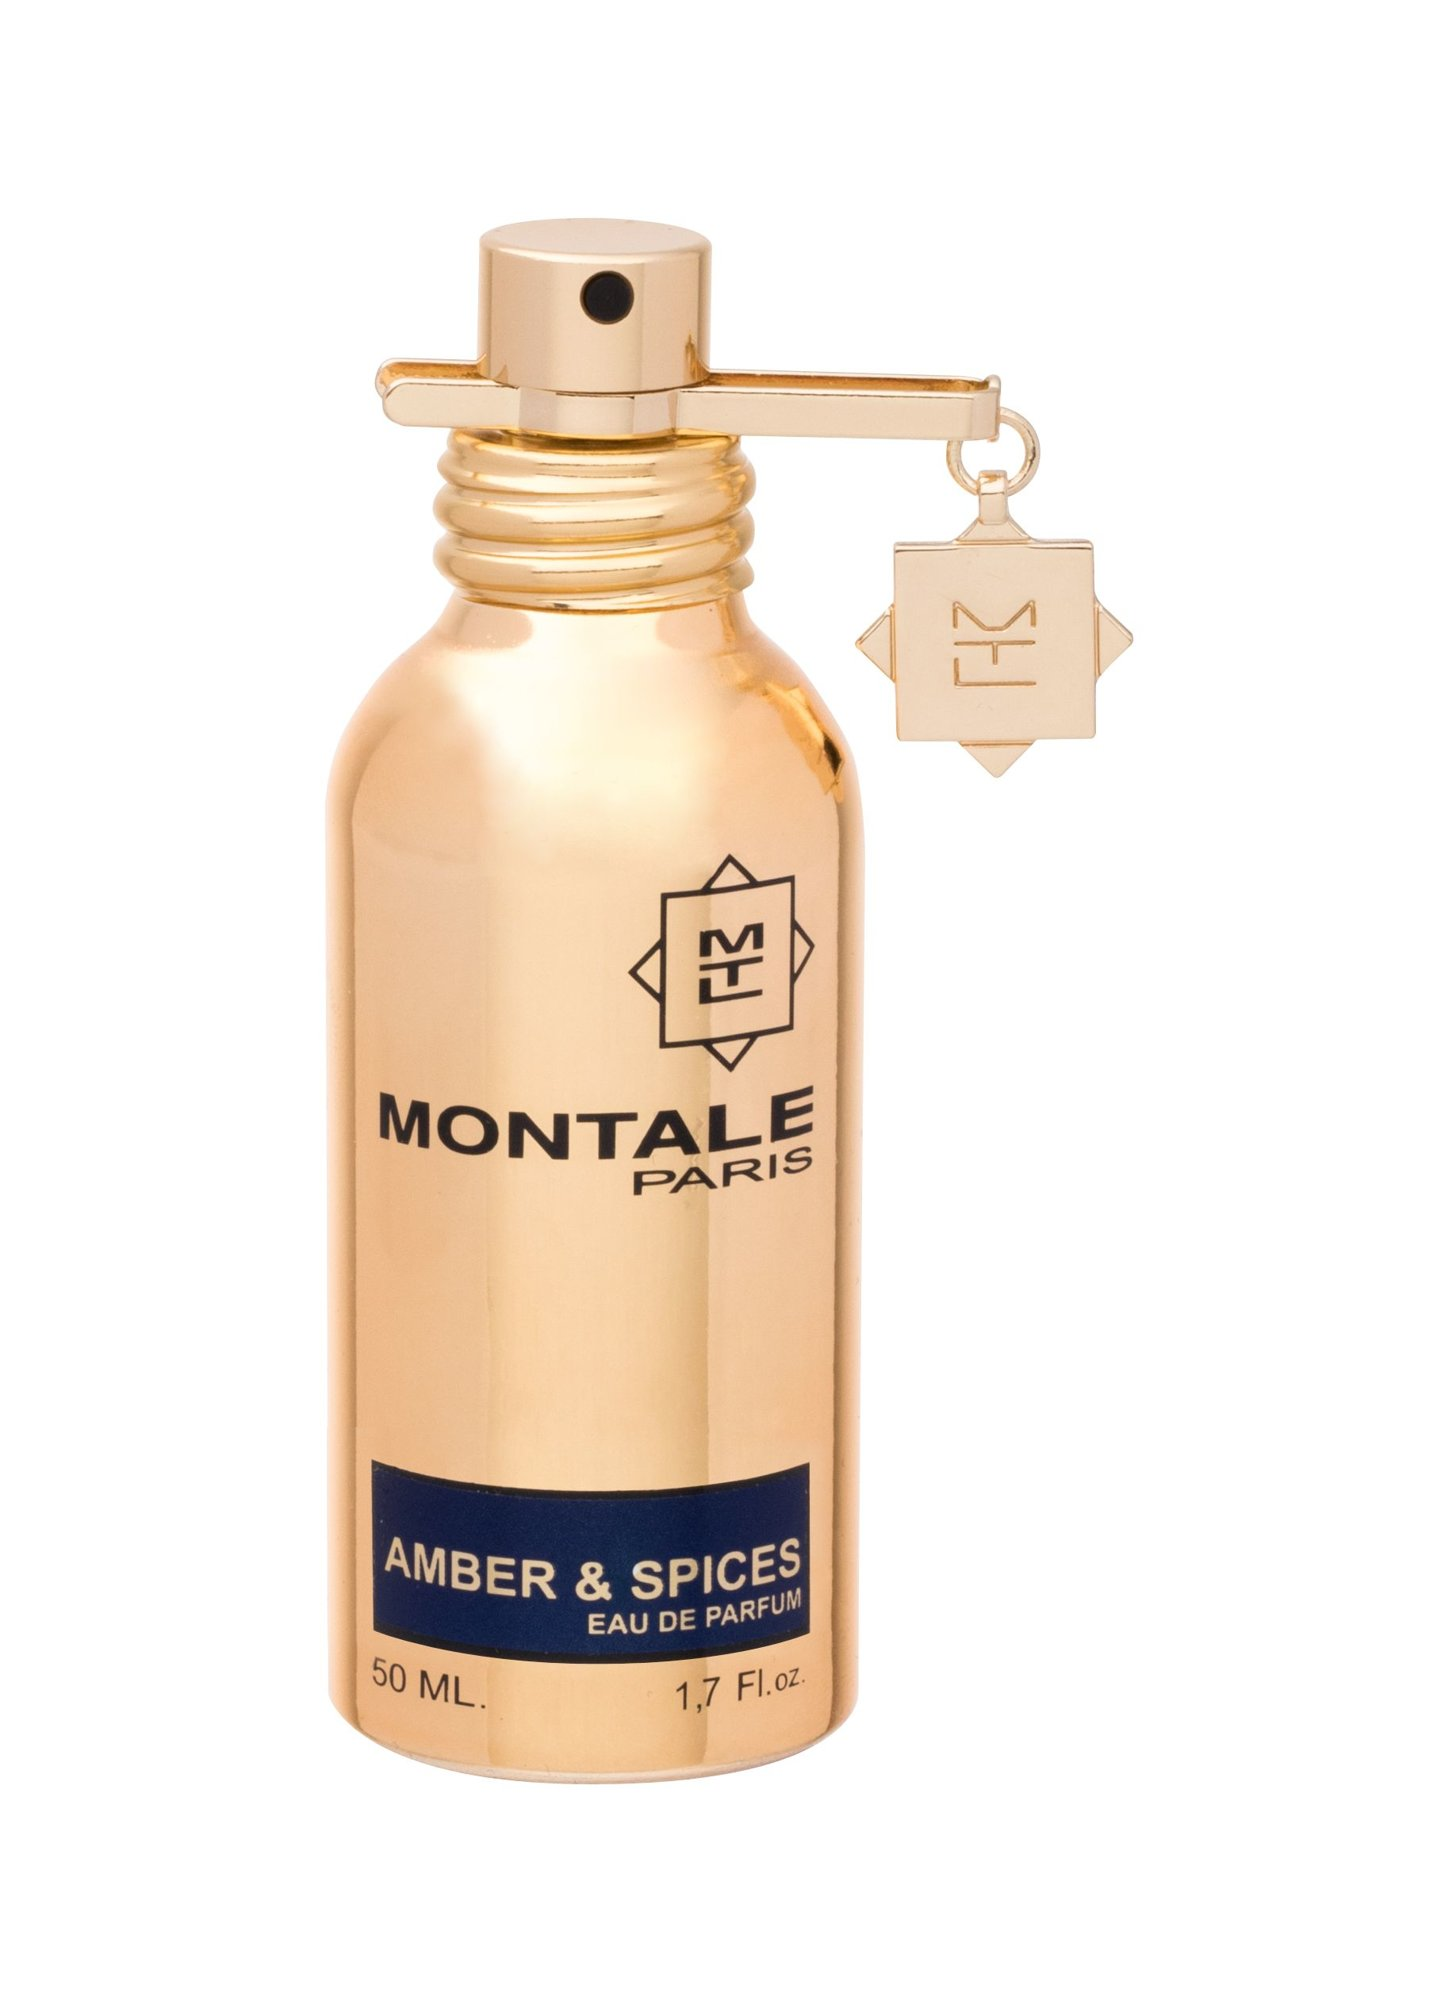 Montale Paris Amber & Spices EDP 50ml